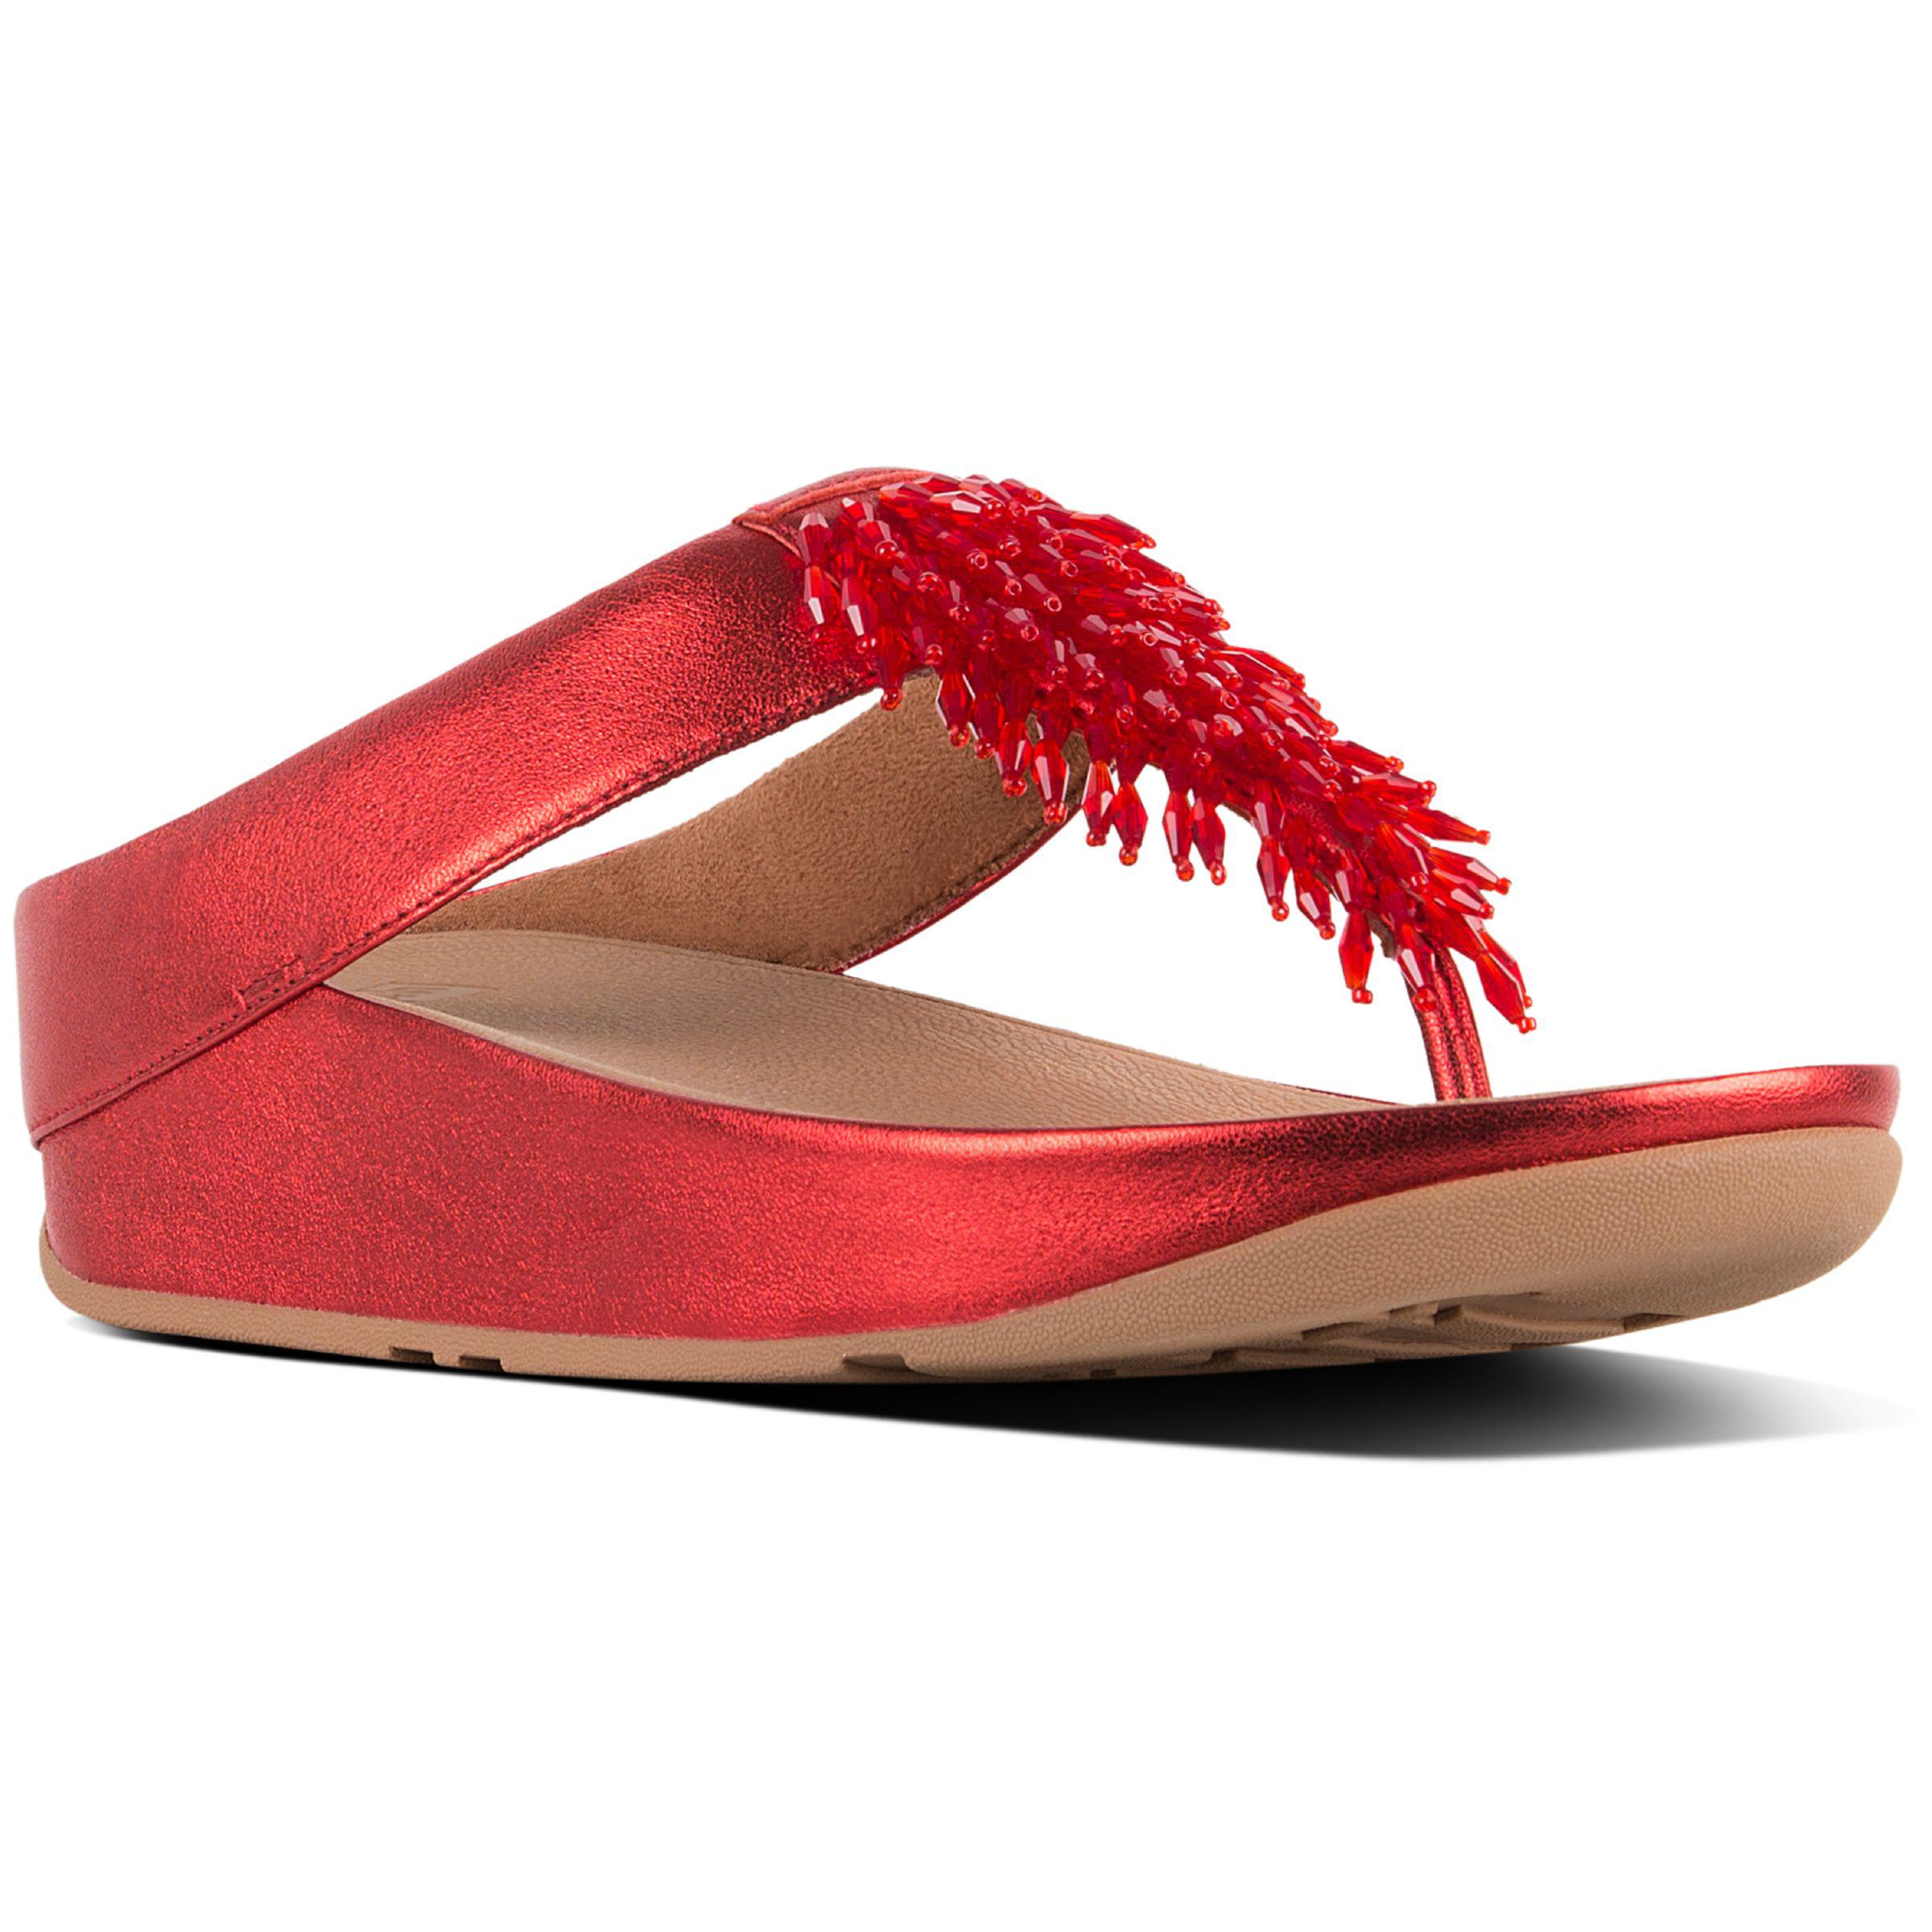 c613abe8b Fitflop - Red Rumba Embellished Toe Post Sandals - Lyst. View fullscreen